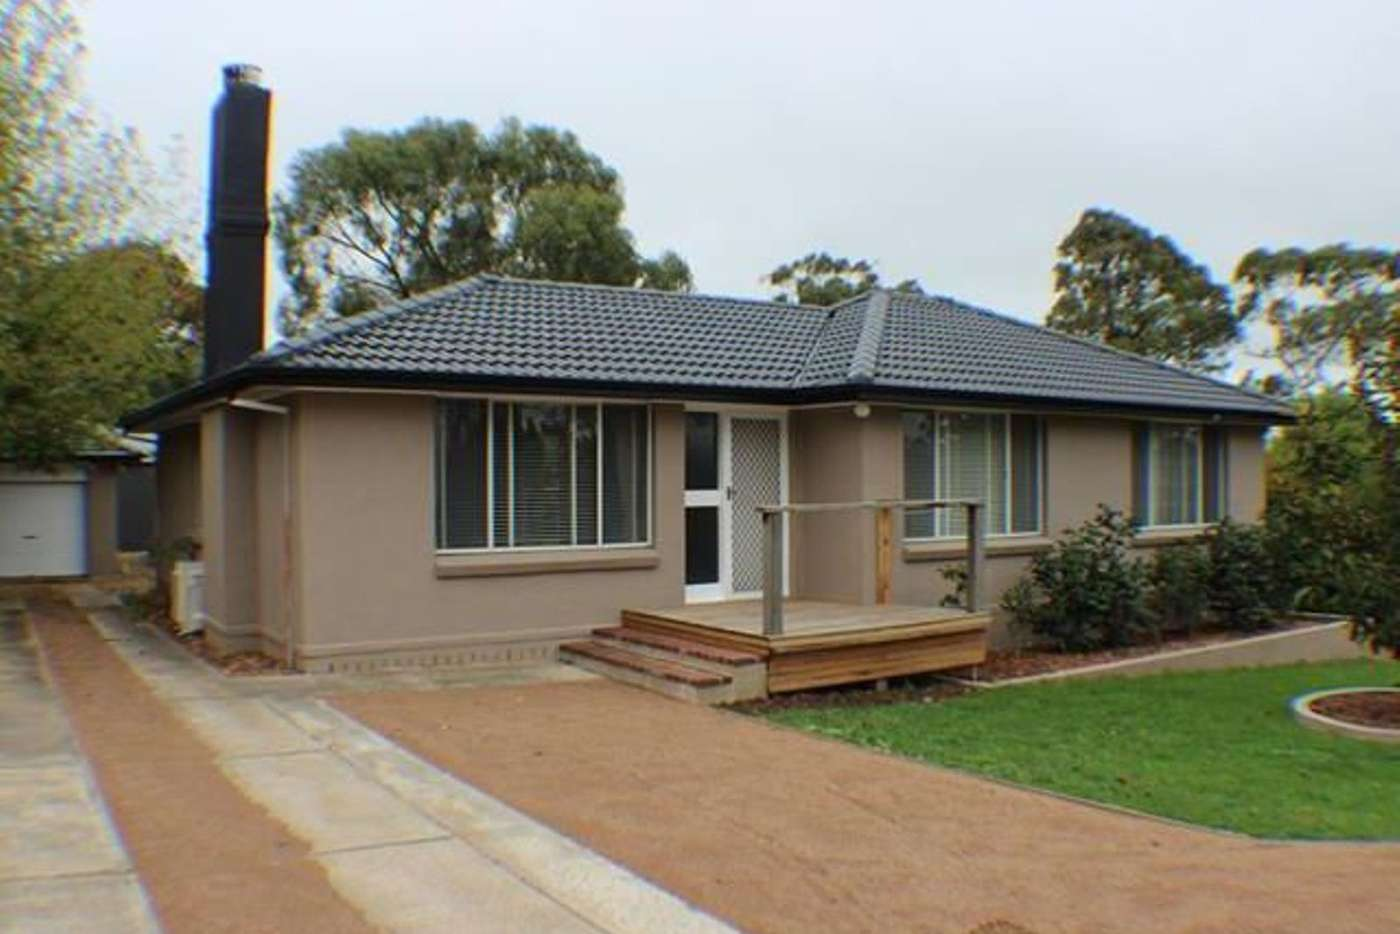 Main view of Homely house listing, 23 Argyle Street, Moss Vale NSW 2577